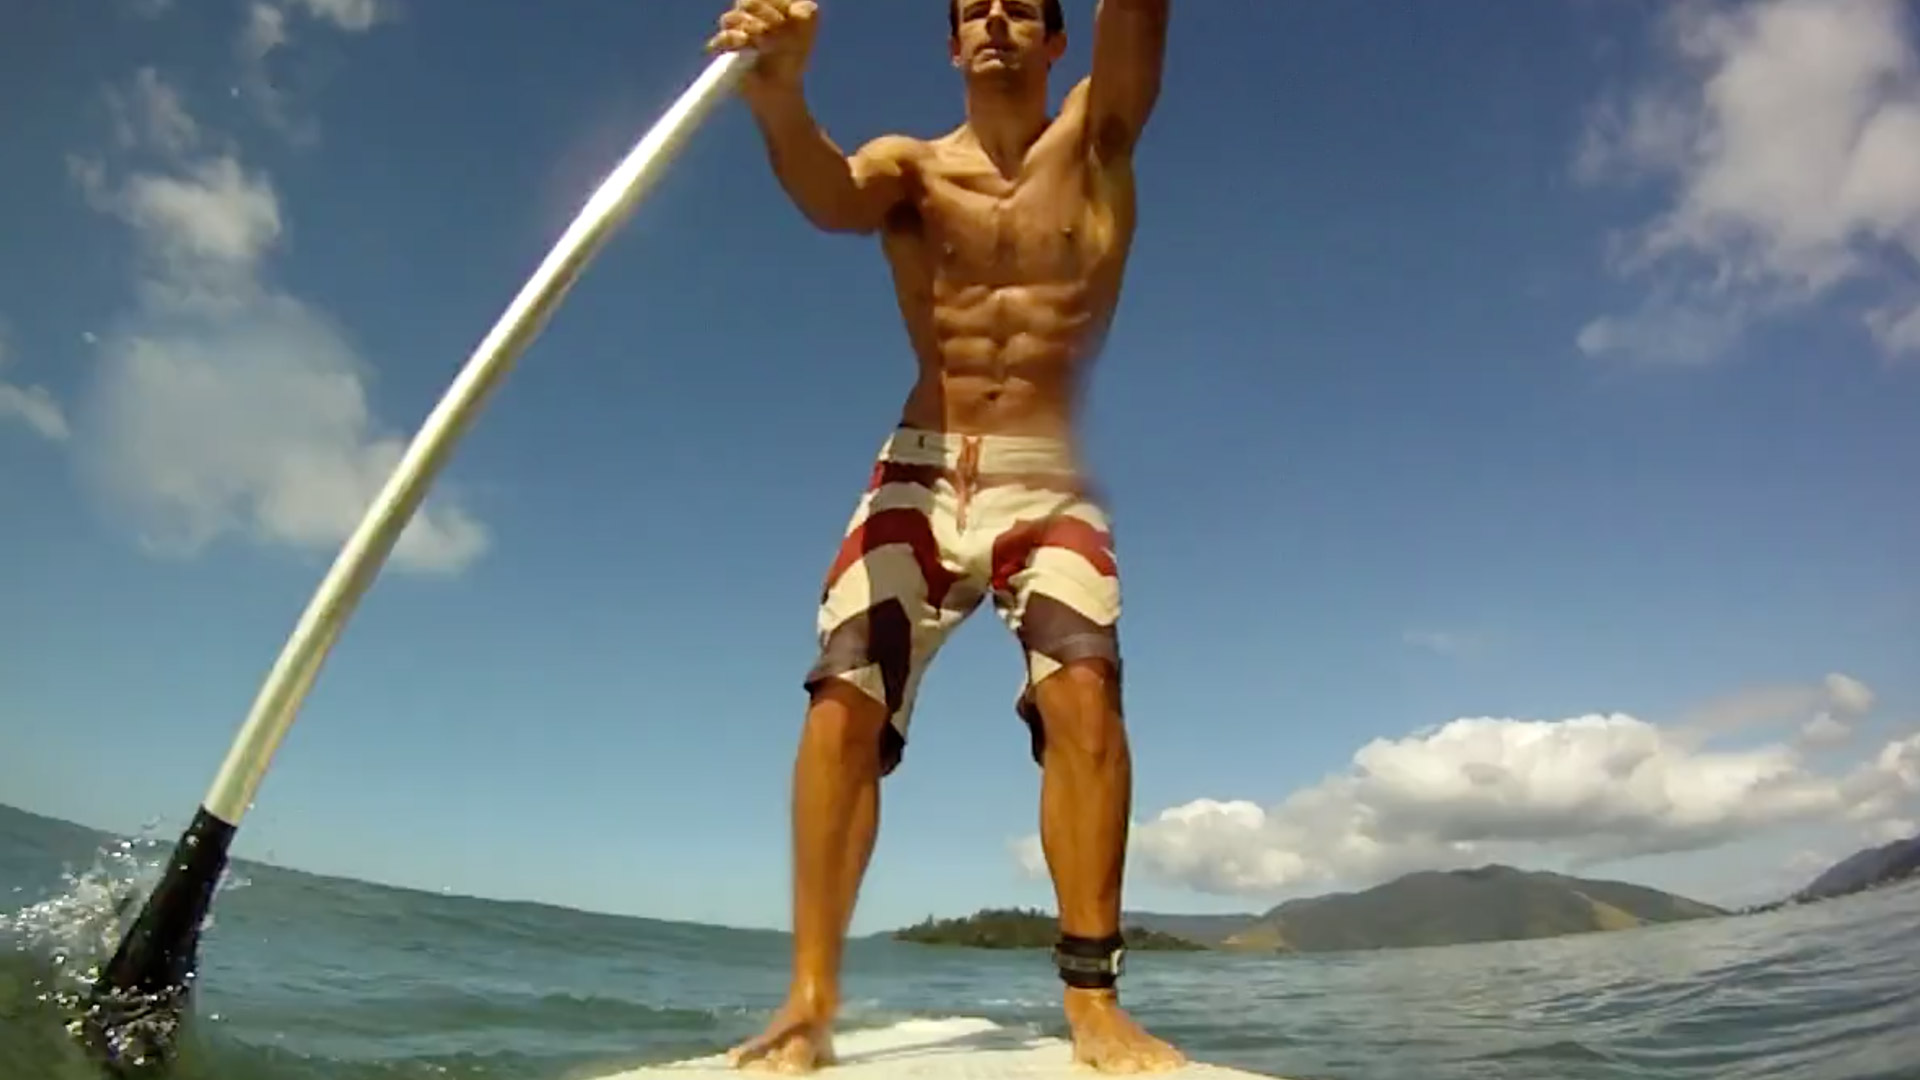 Lagoihna SUP In The Sun Video Cover